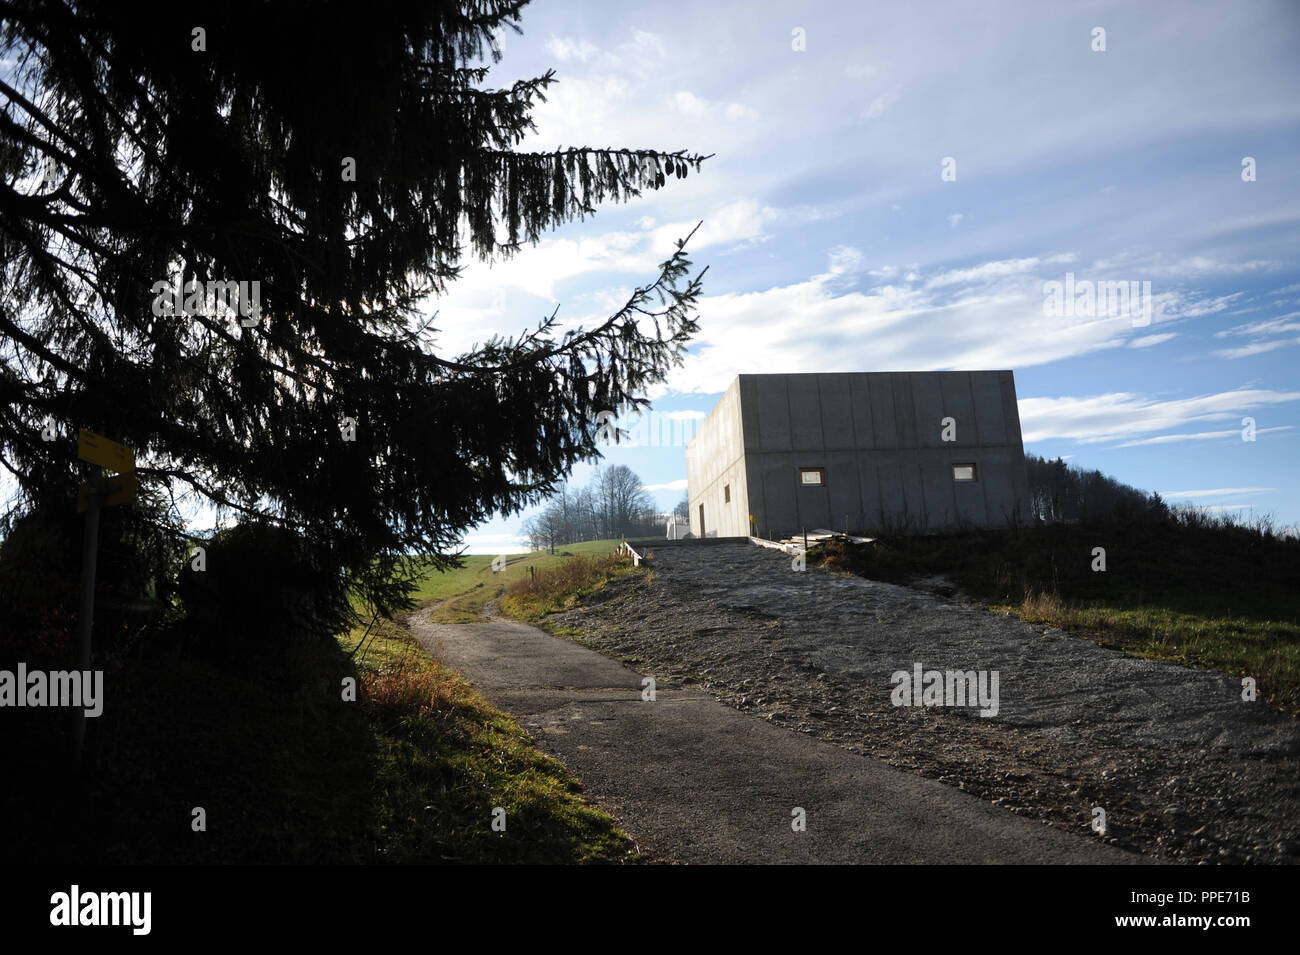 Approval controversy around a concrete barn at the Samerberg: Farmer Josef Hoess has to demolish the shell of his controversial barn made of concrete at the behest of the Landratsamt Rosenheim. - Stock Image